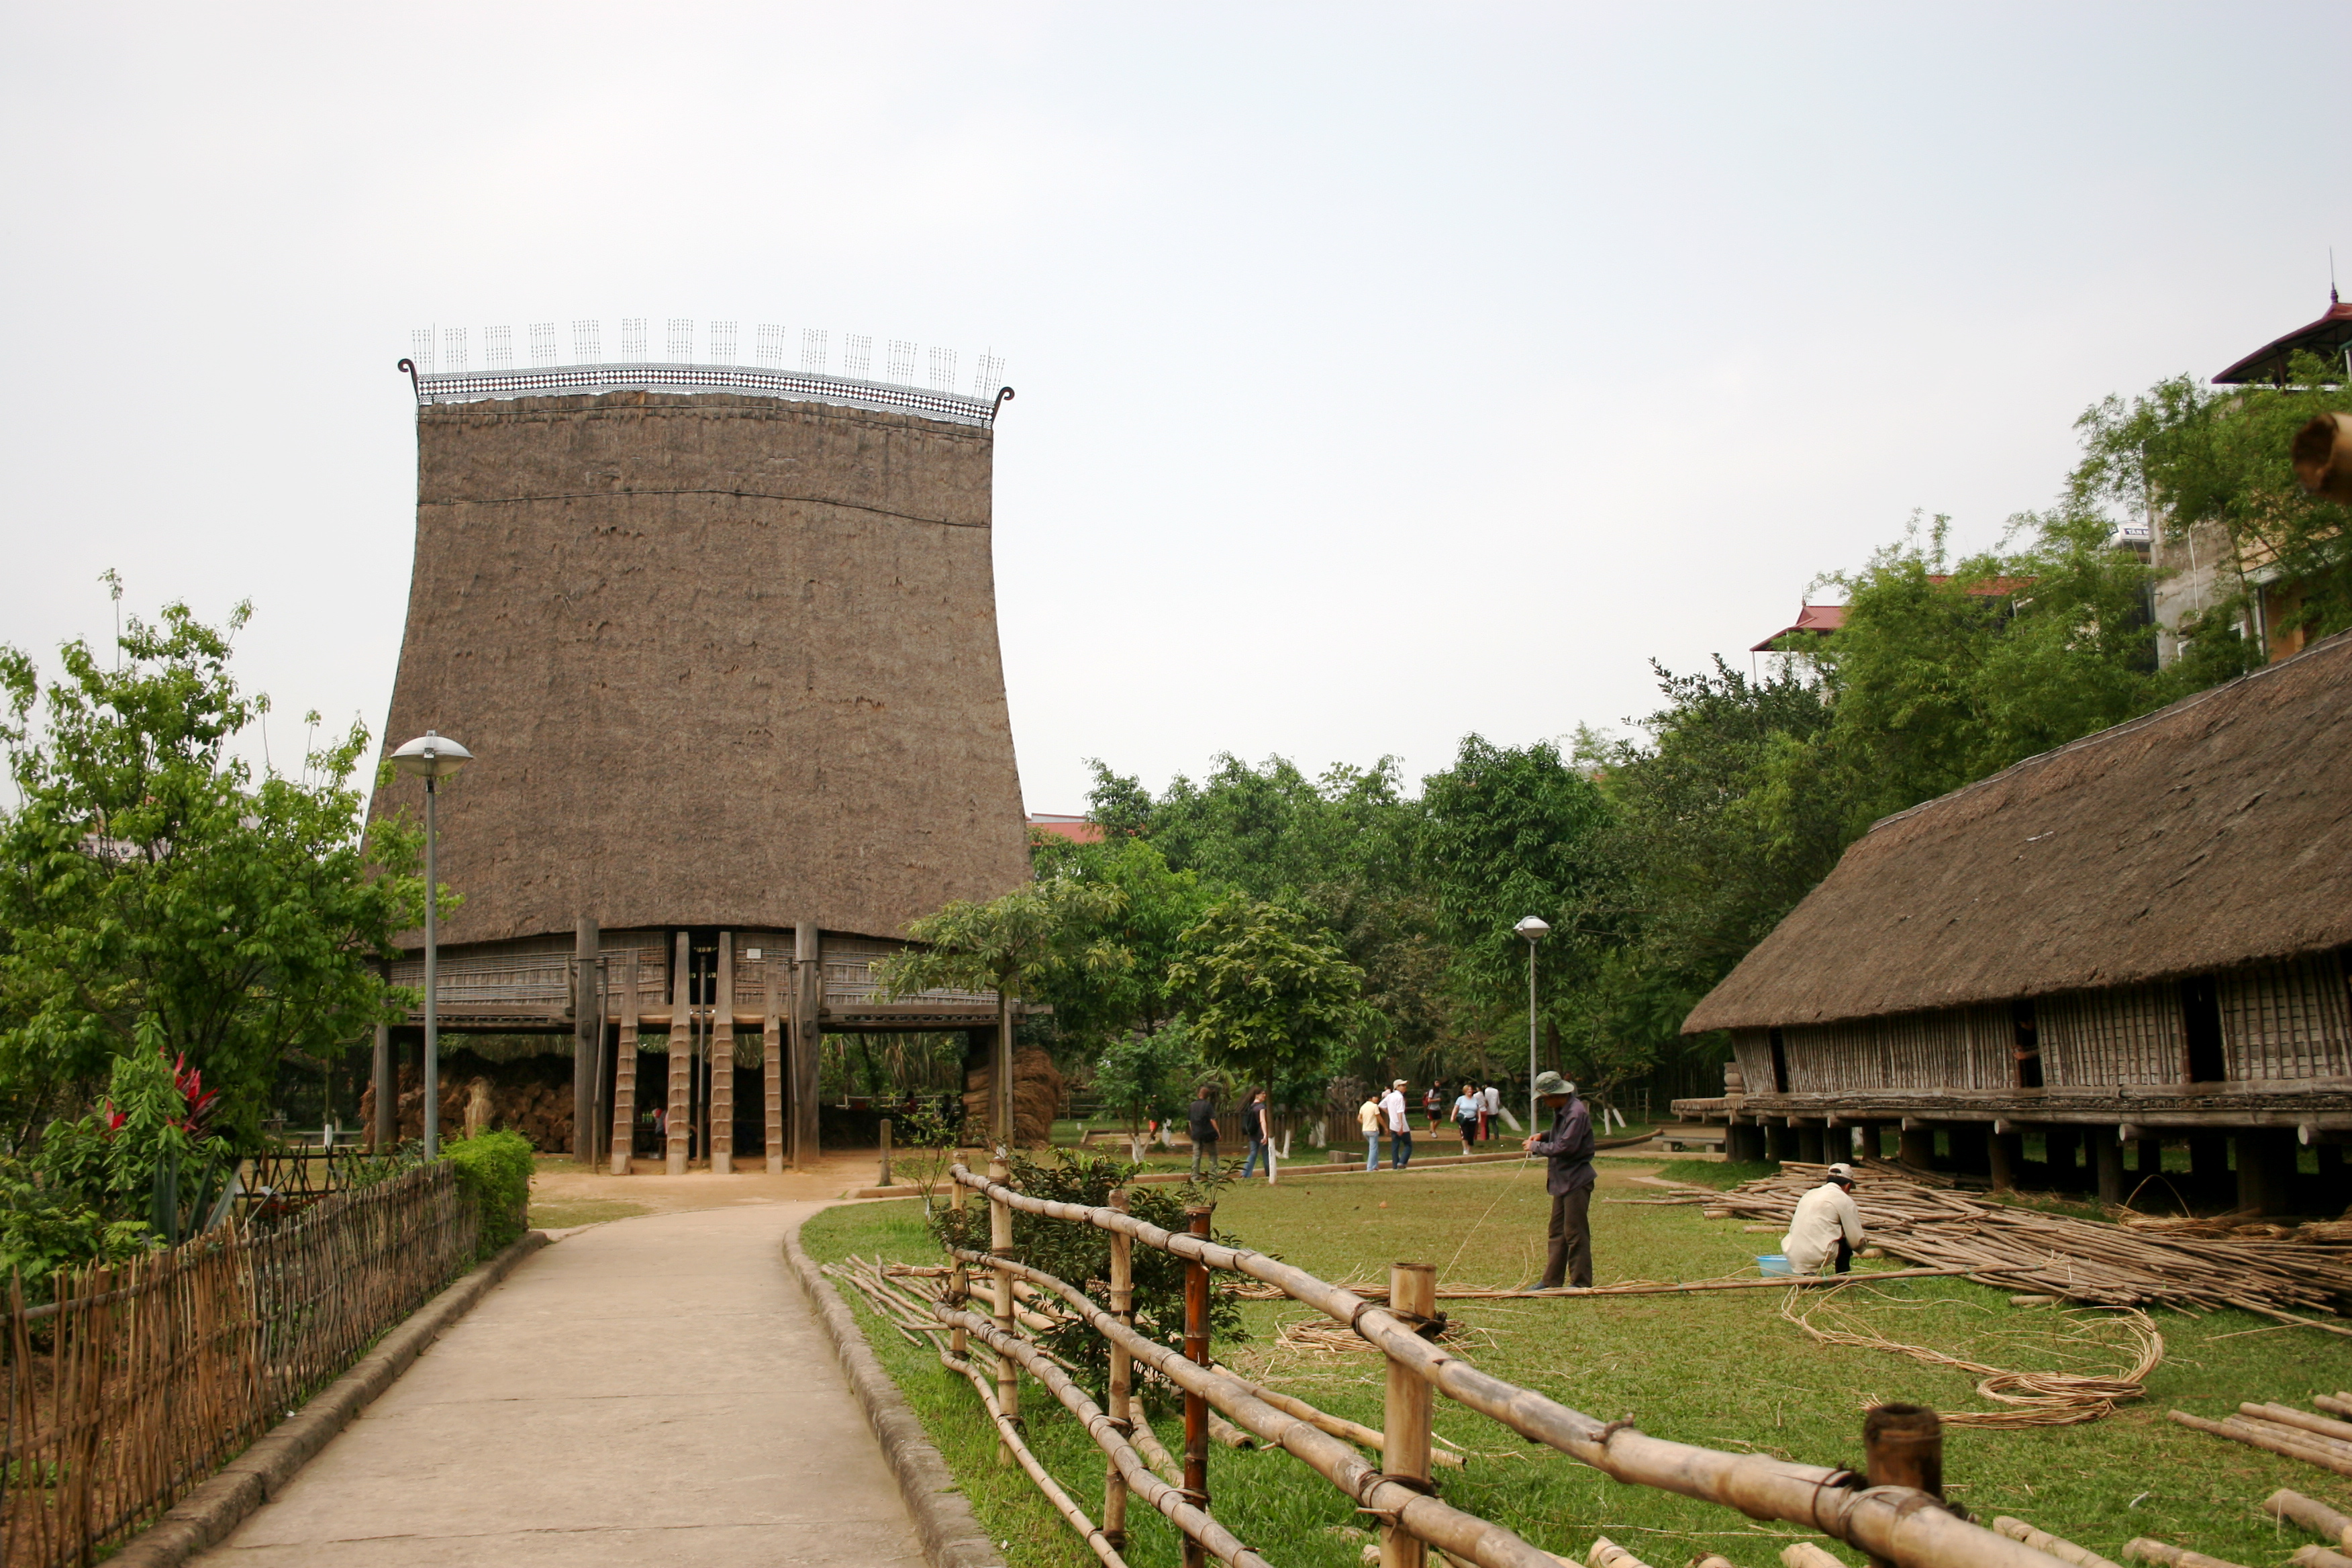 Stilt_house_at_Vietnam_Museum_of_Ethnology_2009.jpg